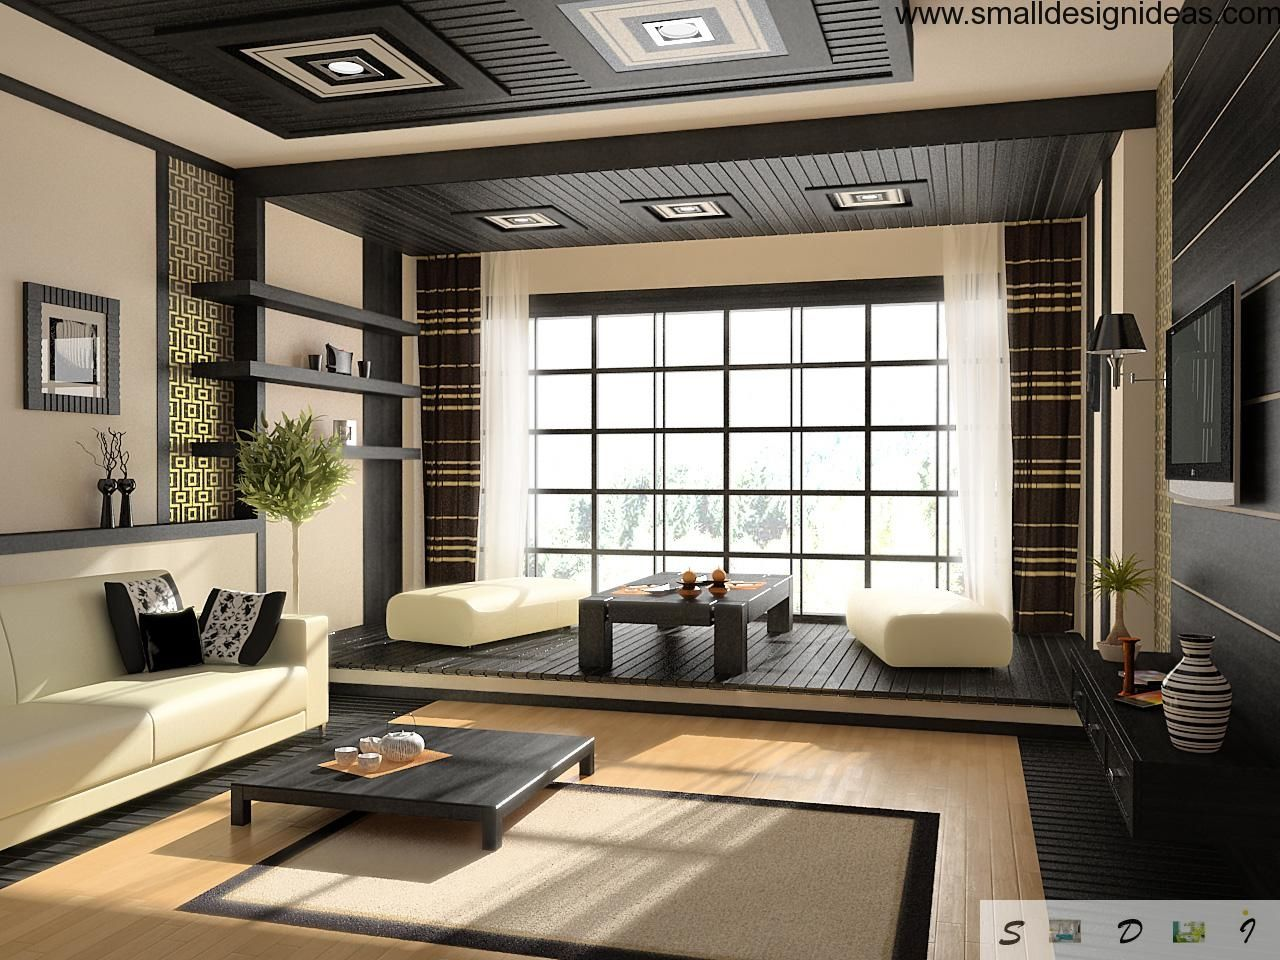 Interior Design Japanese Style 10 things to know before remodeling your interior into japanese